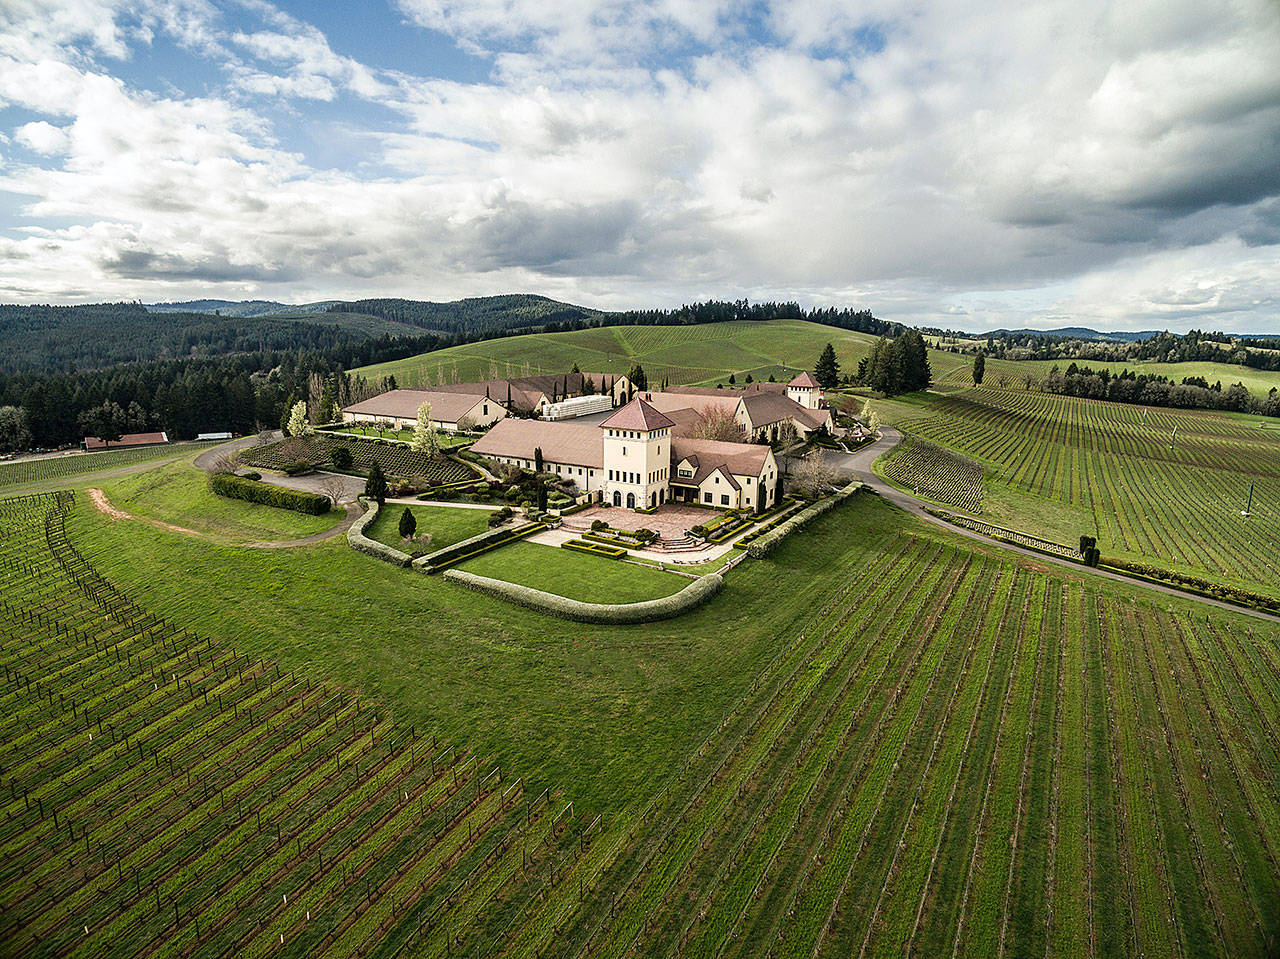 King Estate Winery, a destination near Eugene, Oregon, received a trio of Platinum awards during the 20th annual year-end judging of gold-medal wines staged by Wine Press Northwest magazine in Kennewick. (Photo courtesy of King Estate Winery)